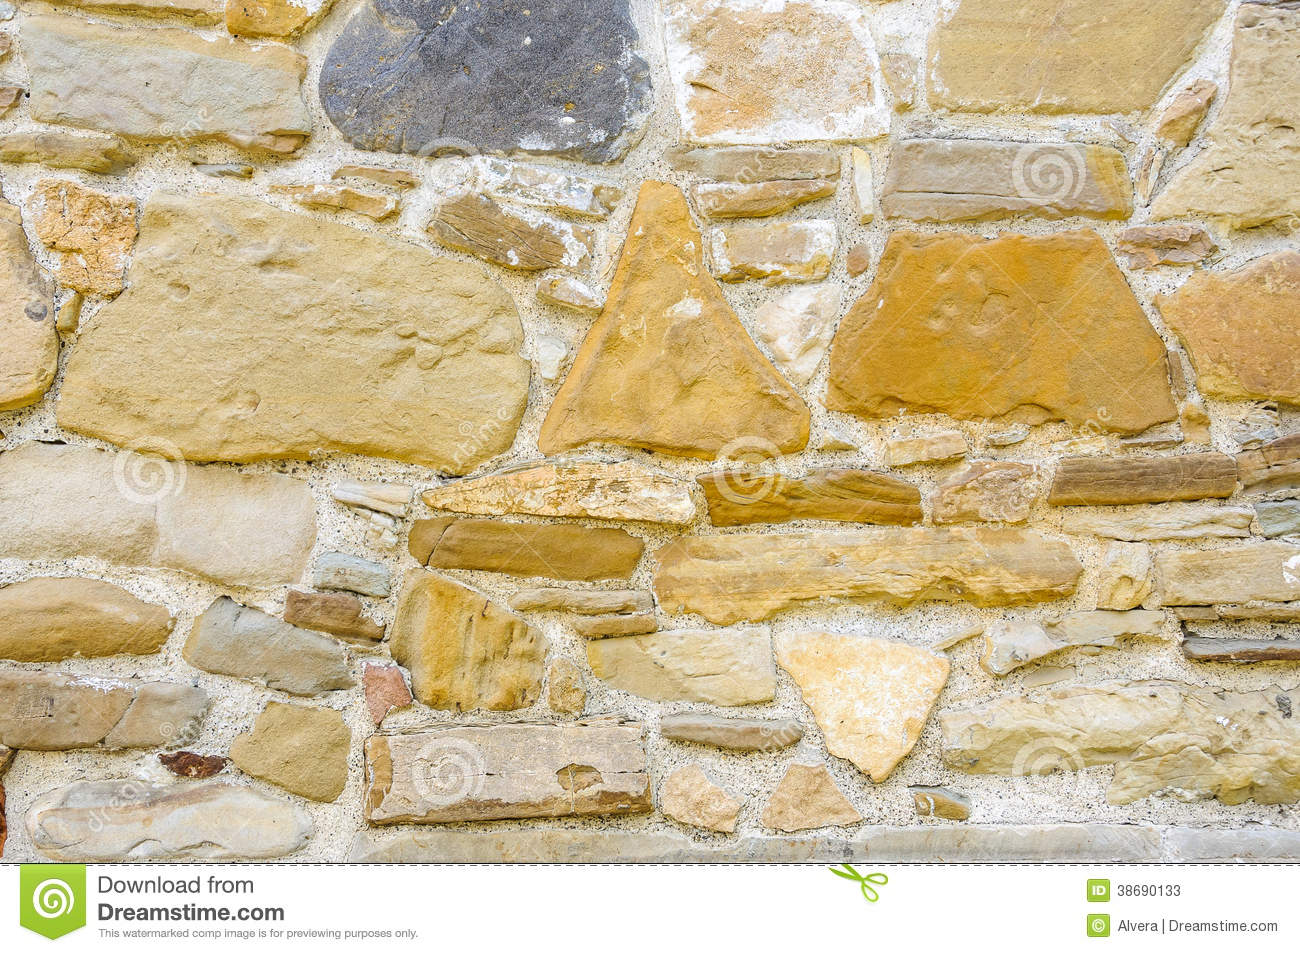 Fotos de archivo restored old stone wall imagen 38690133 for Papel para pared imitacion piedra